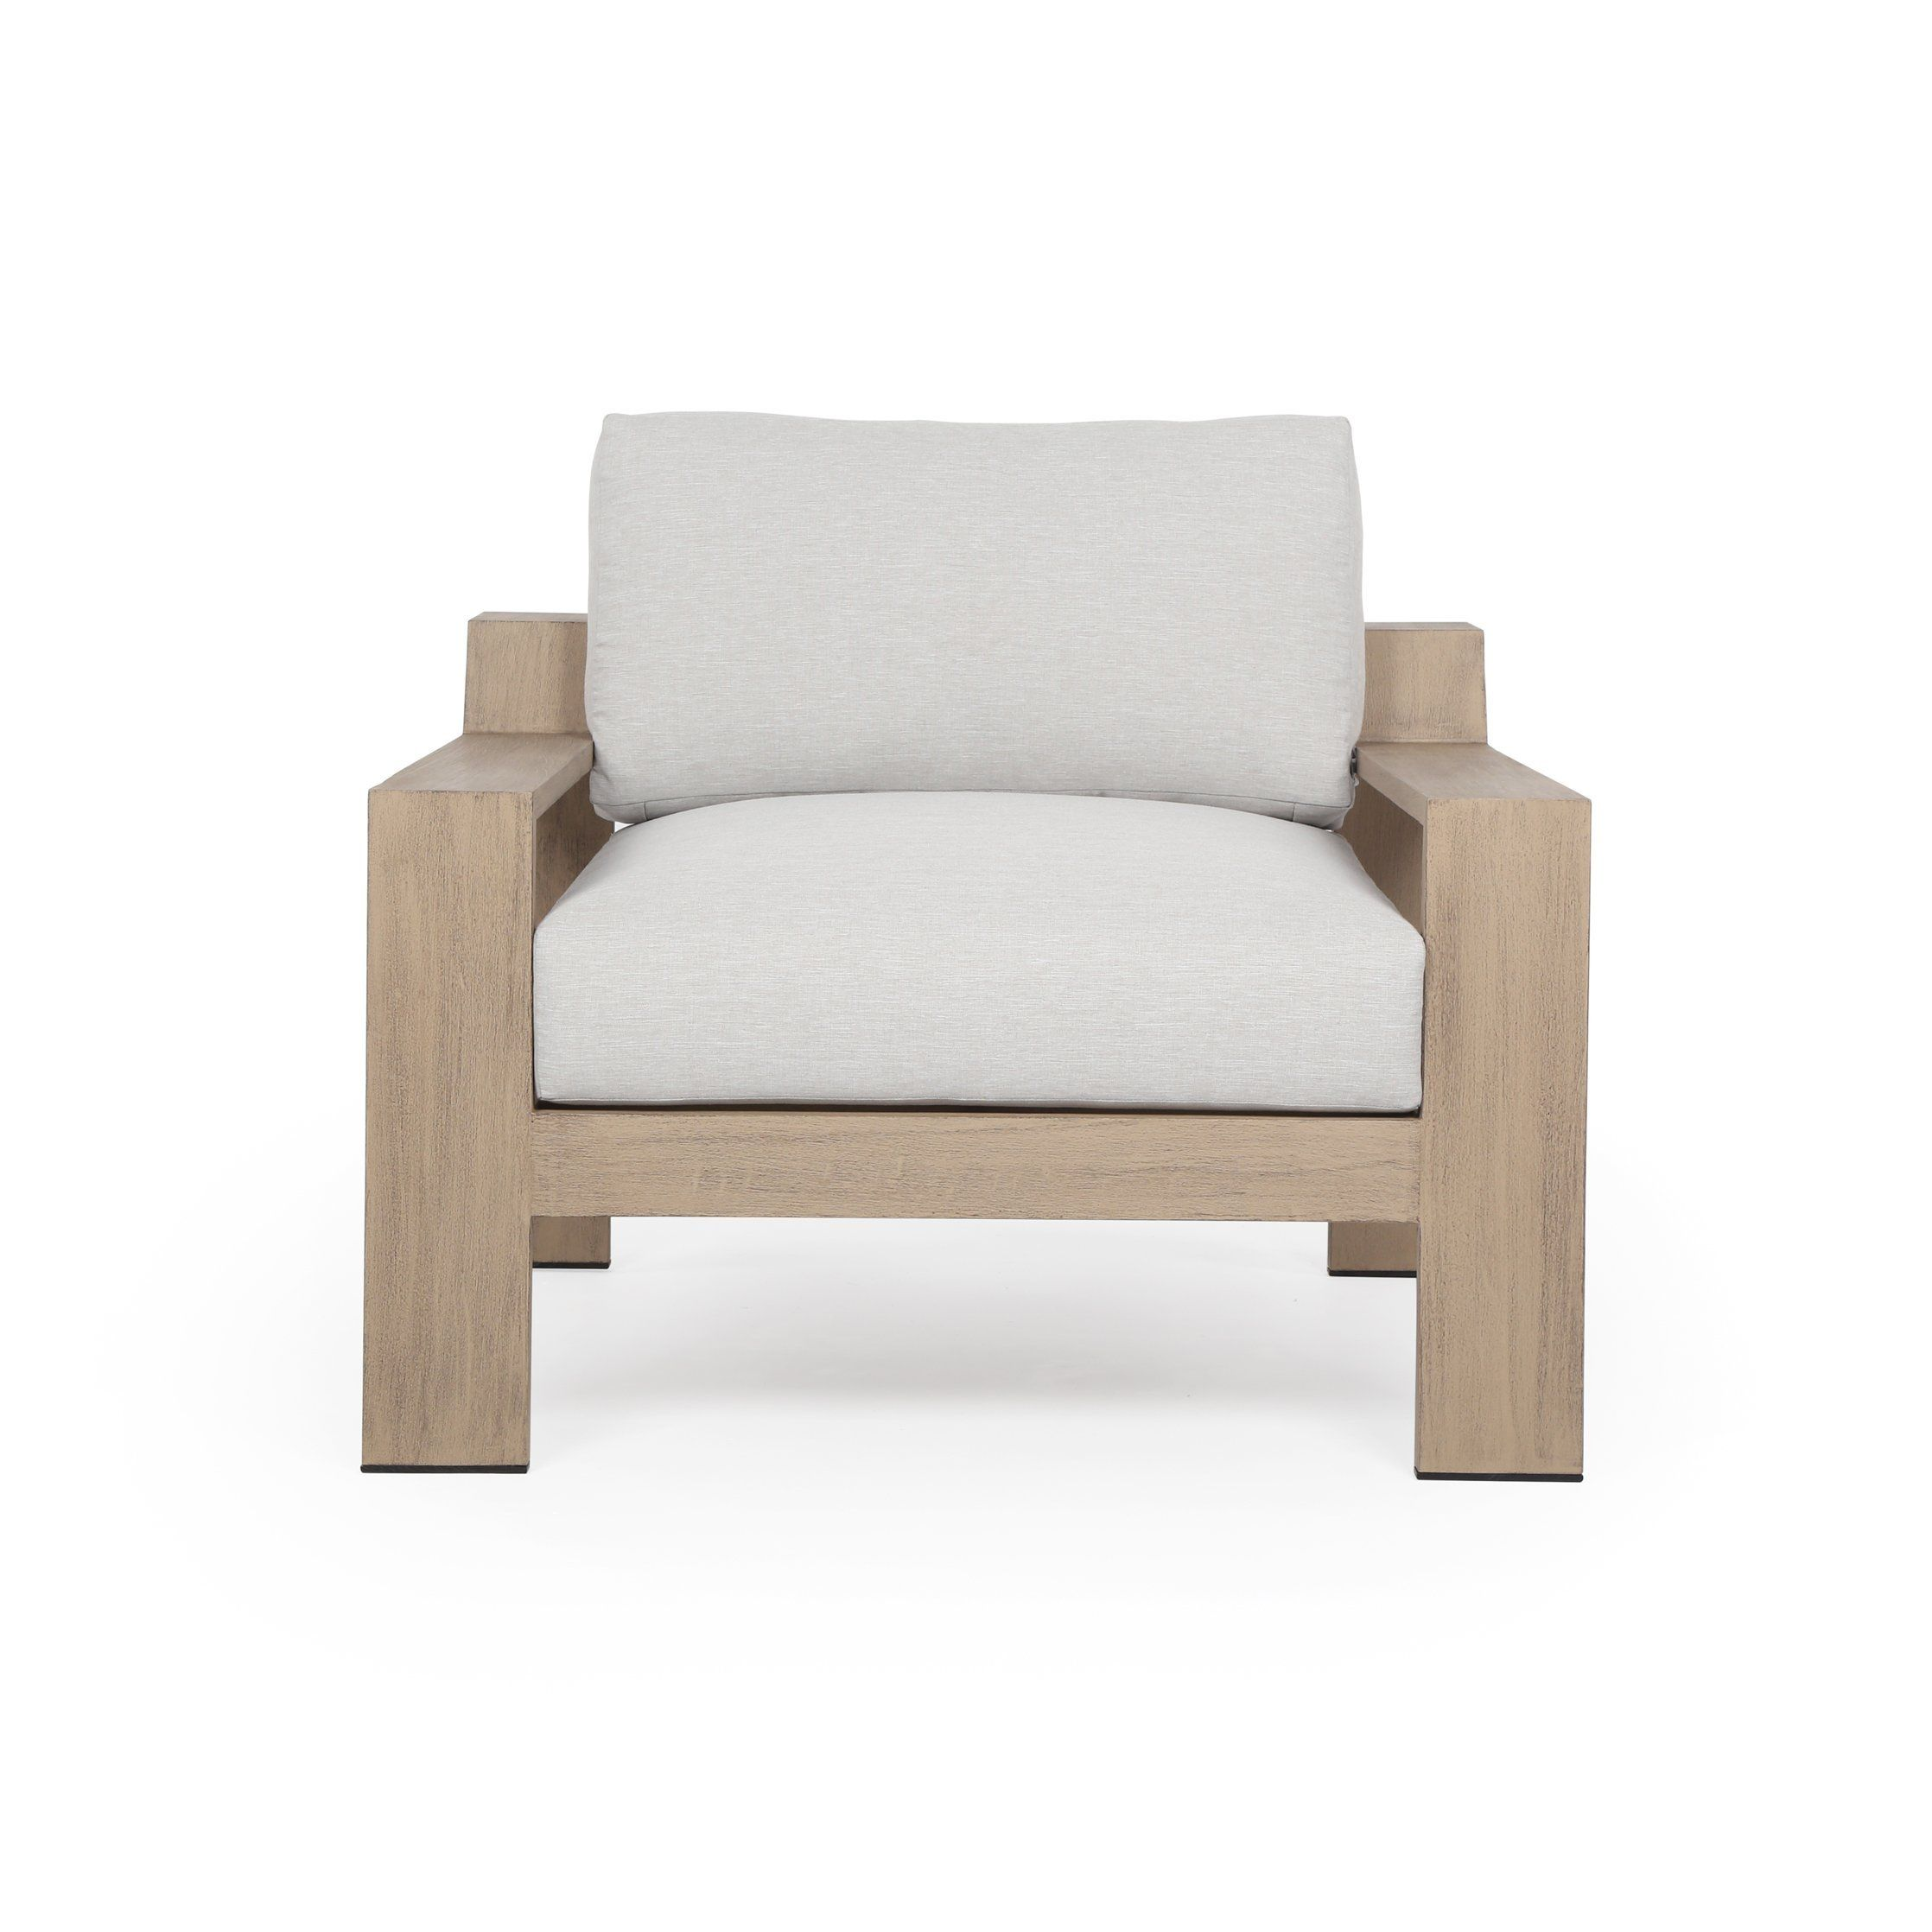 Monterey Outdoor Chair In Washed Brown In 2020 Outdoor Chairs Teak Outdoor Furniture